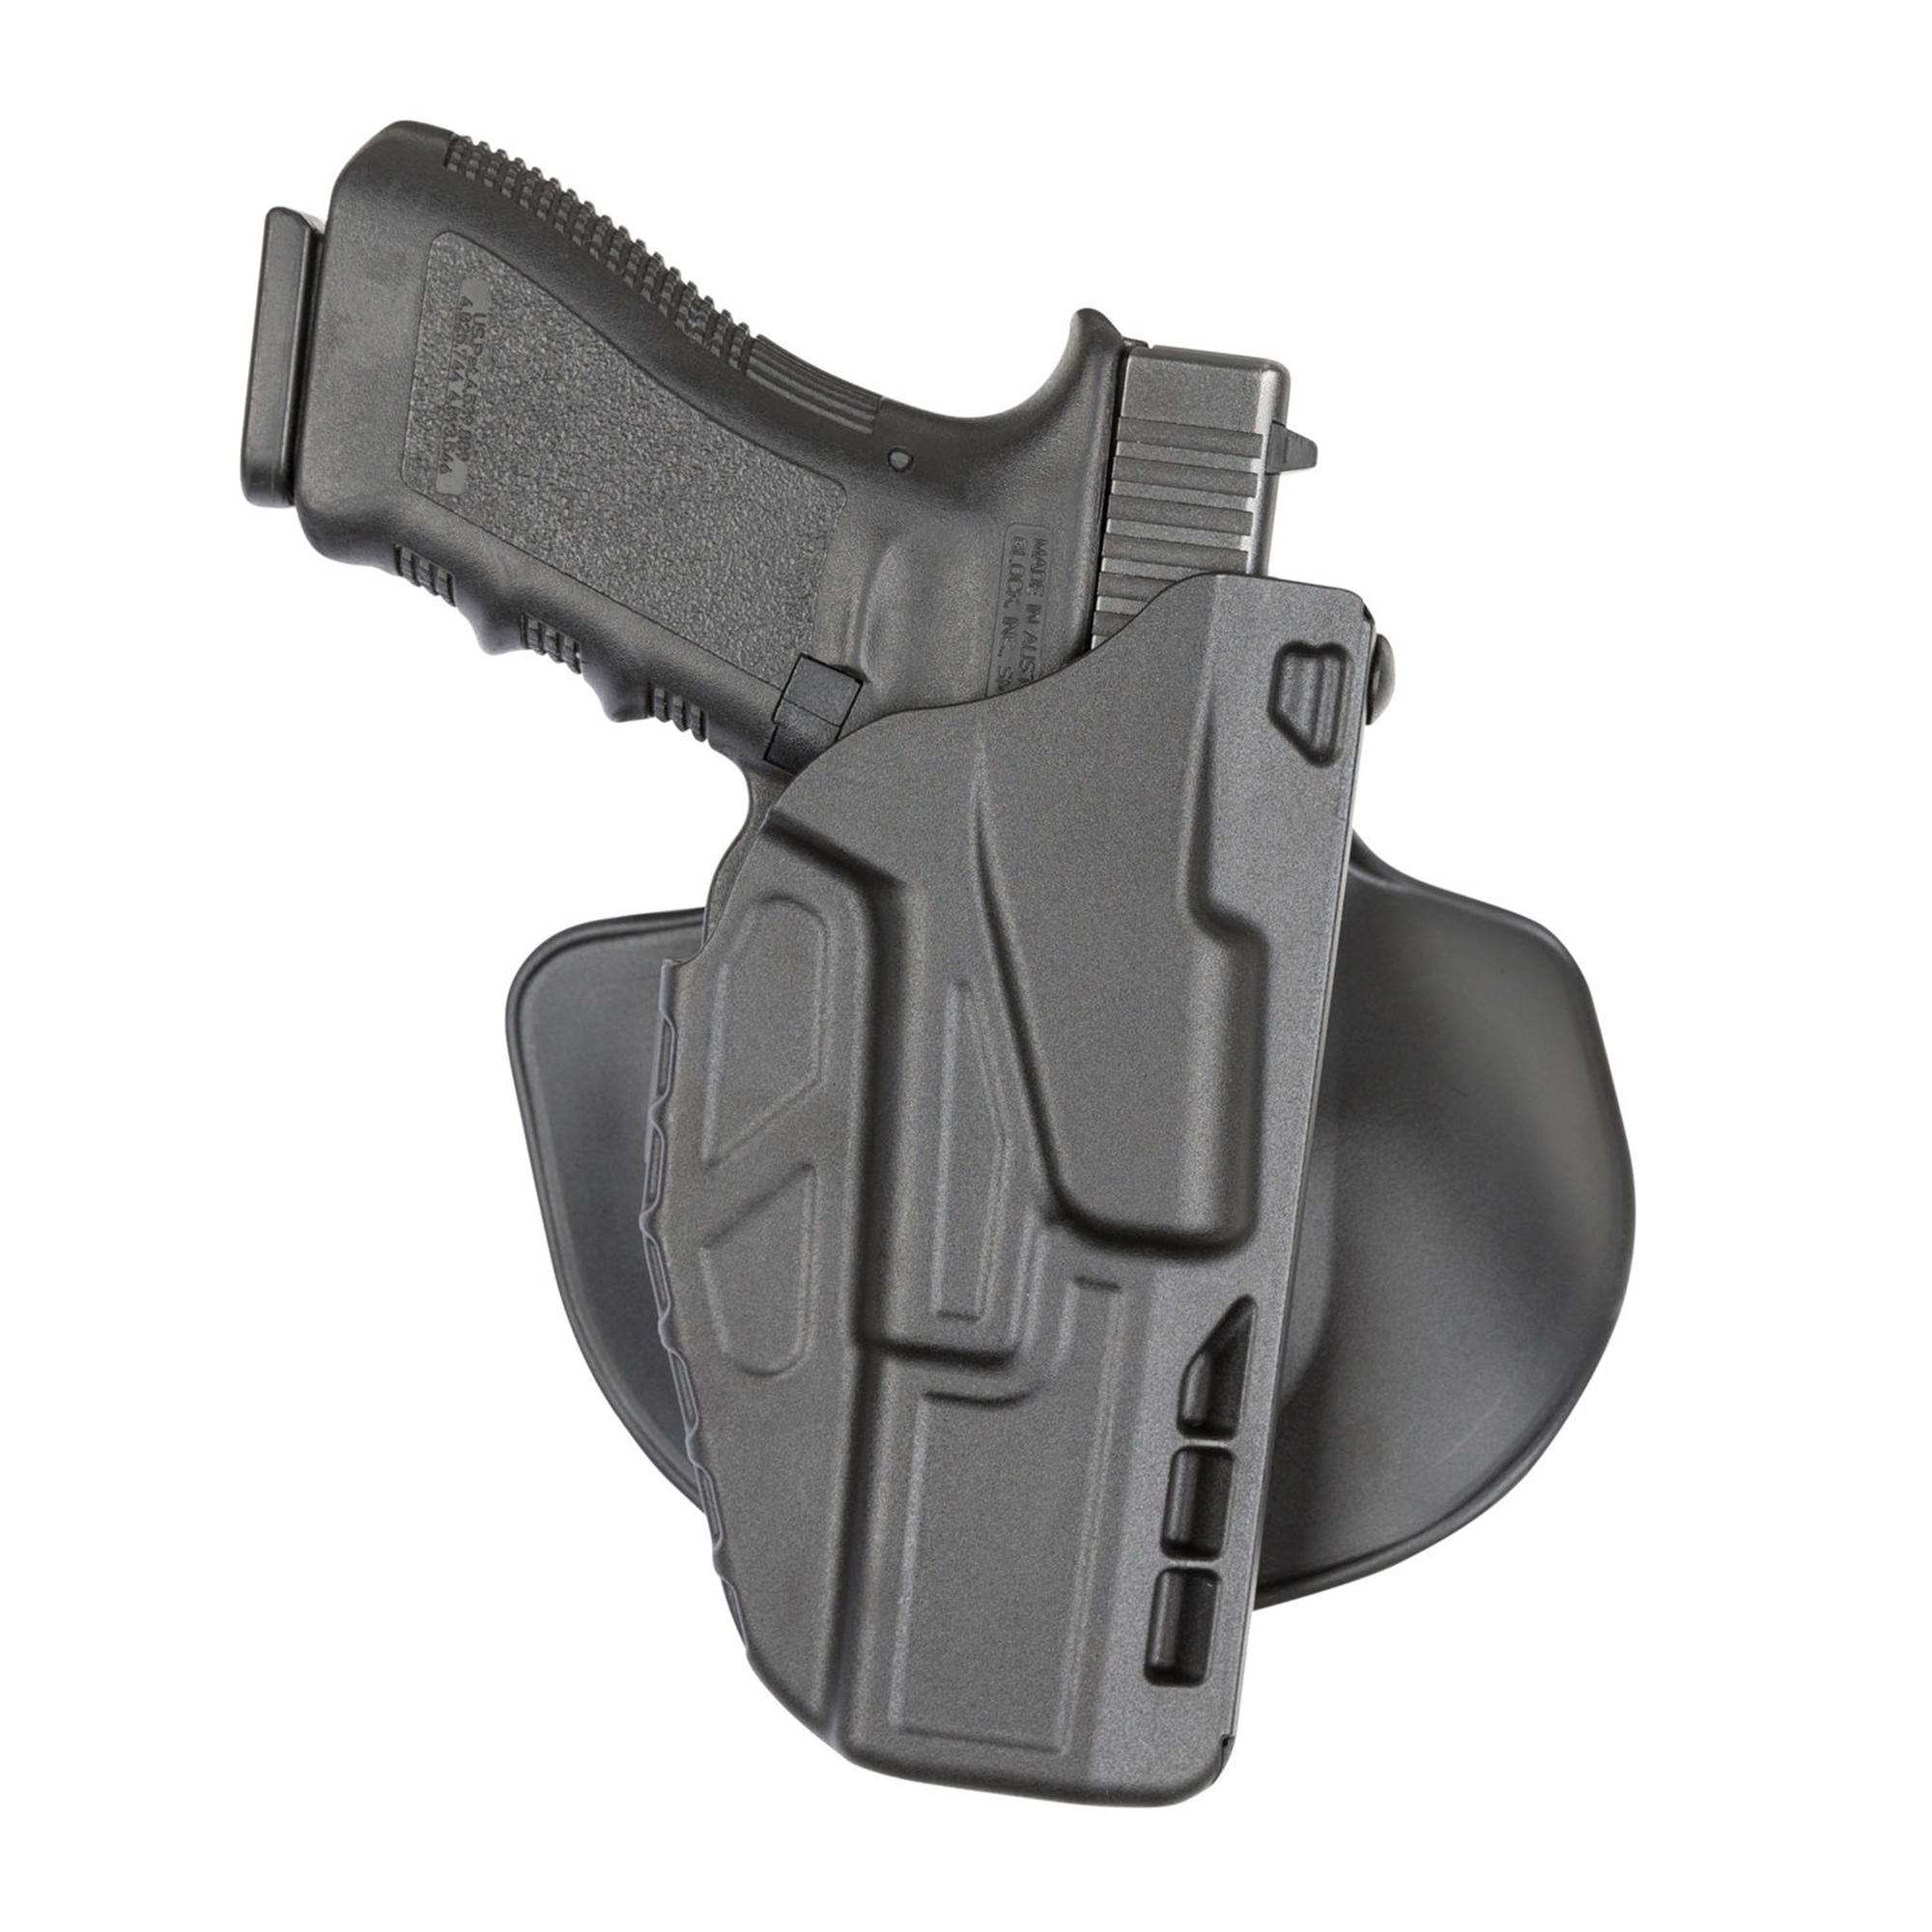 Safariland Model 7378 7TS ALS Open Top Concealment Paddle Holster, Glock 17